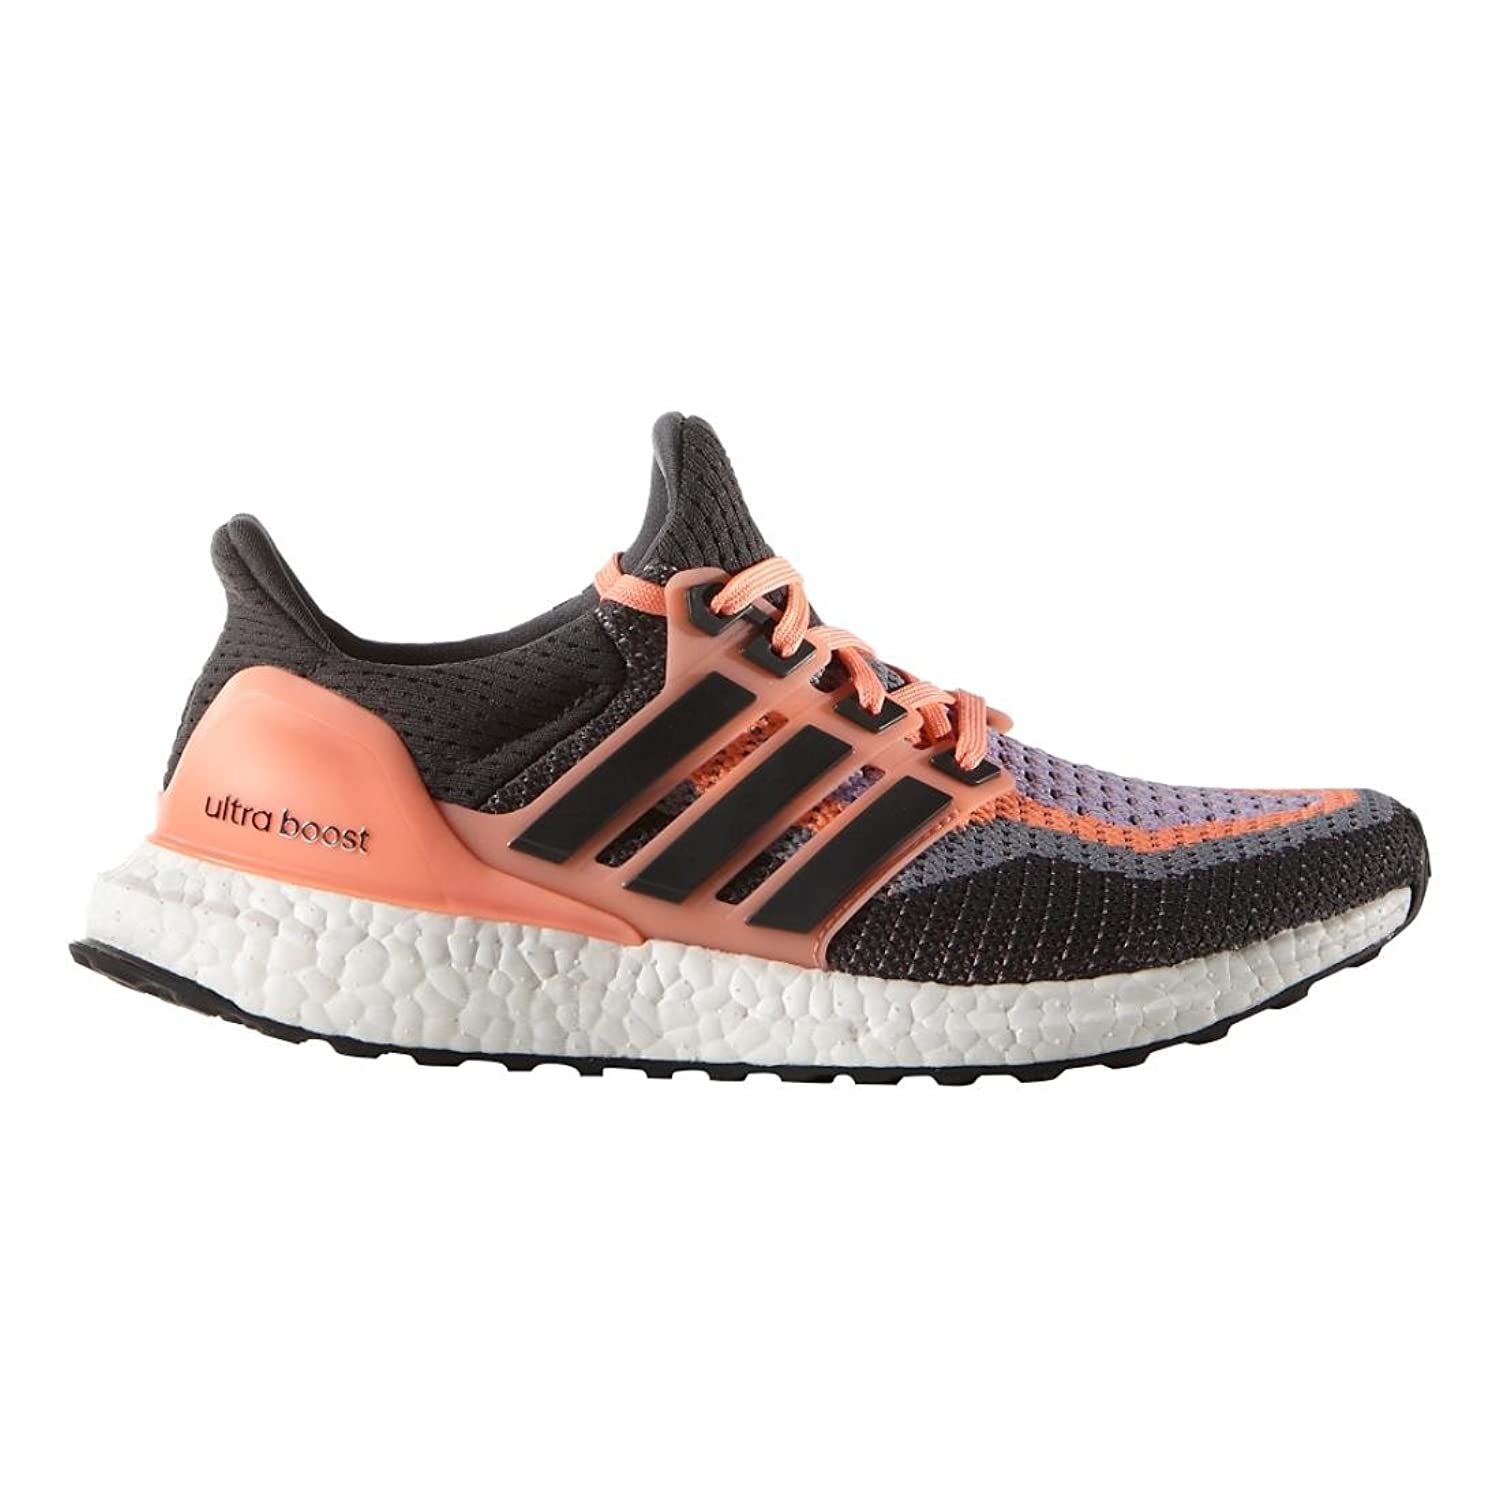 Adidas Ultra Boost Women's Shoes Flash Pink/Night Flash